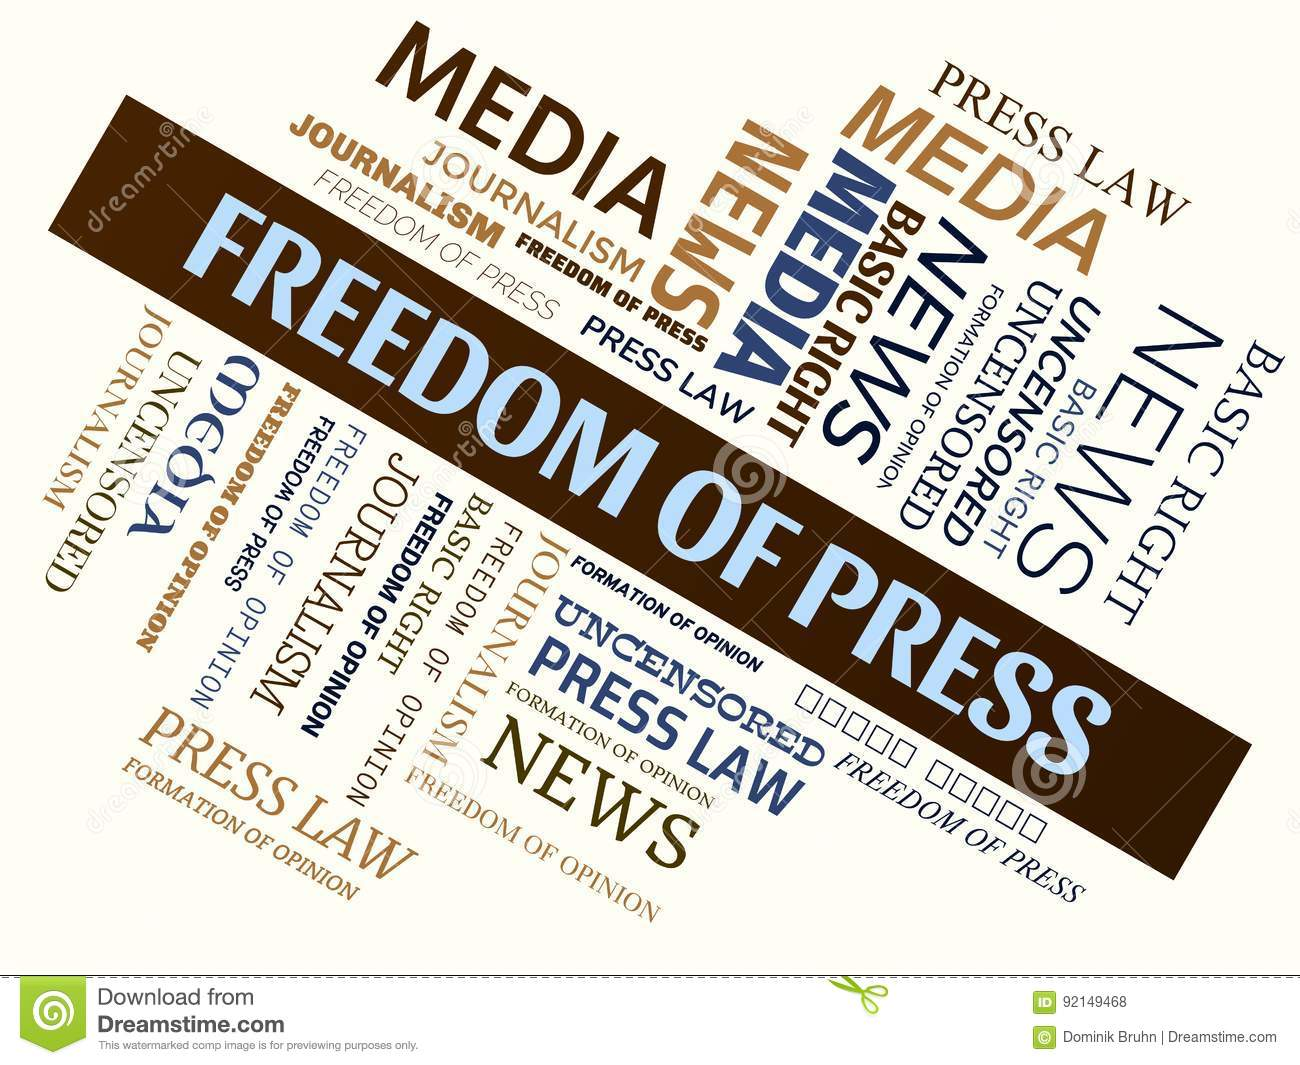 freedom of press Freedom of the press: of speech and of the press, particularly as that freedom permits an informed access to information and opinions about political matters even the more repressive regimes today recognize this underlying principle, in that their ruling bodies try to make certain that they.